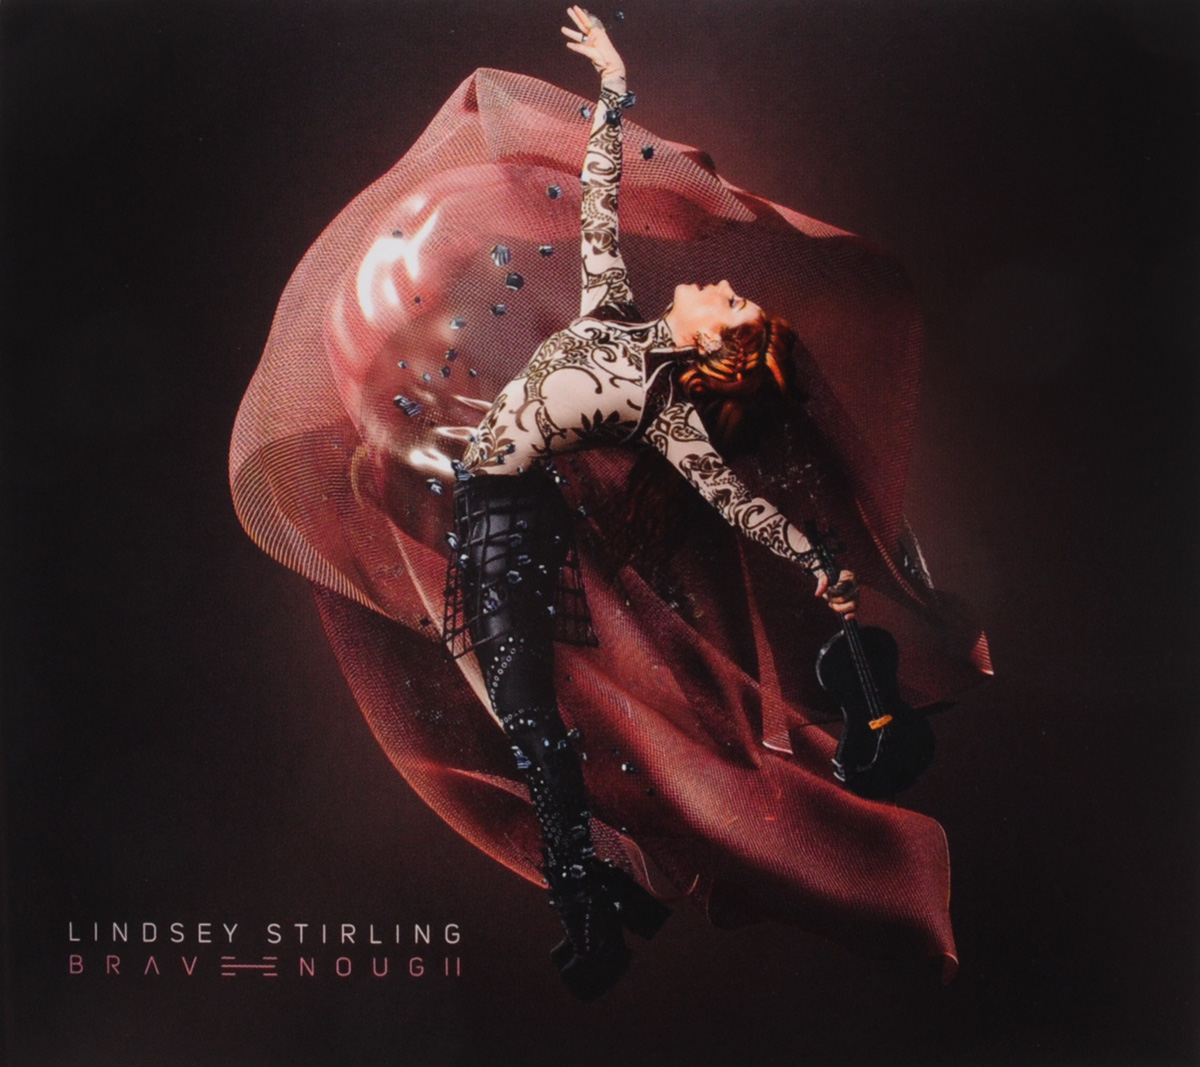 Lindsey Stirling. Brave Enough